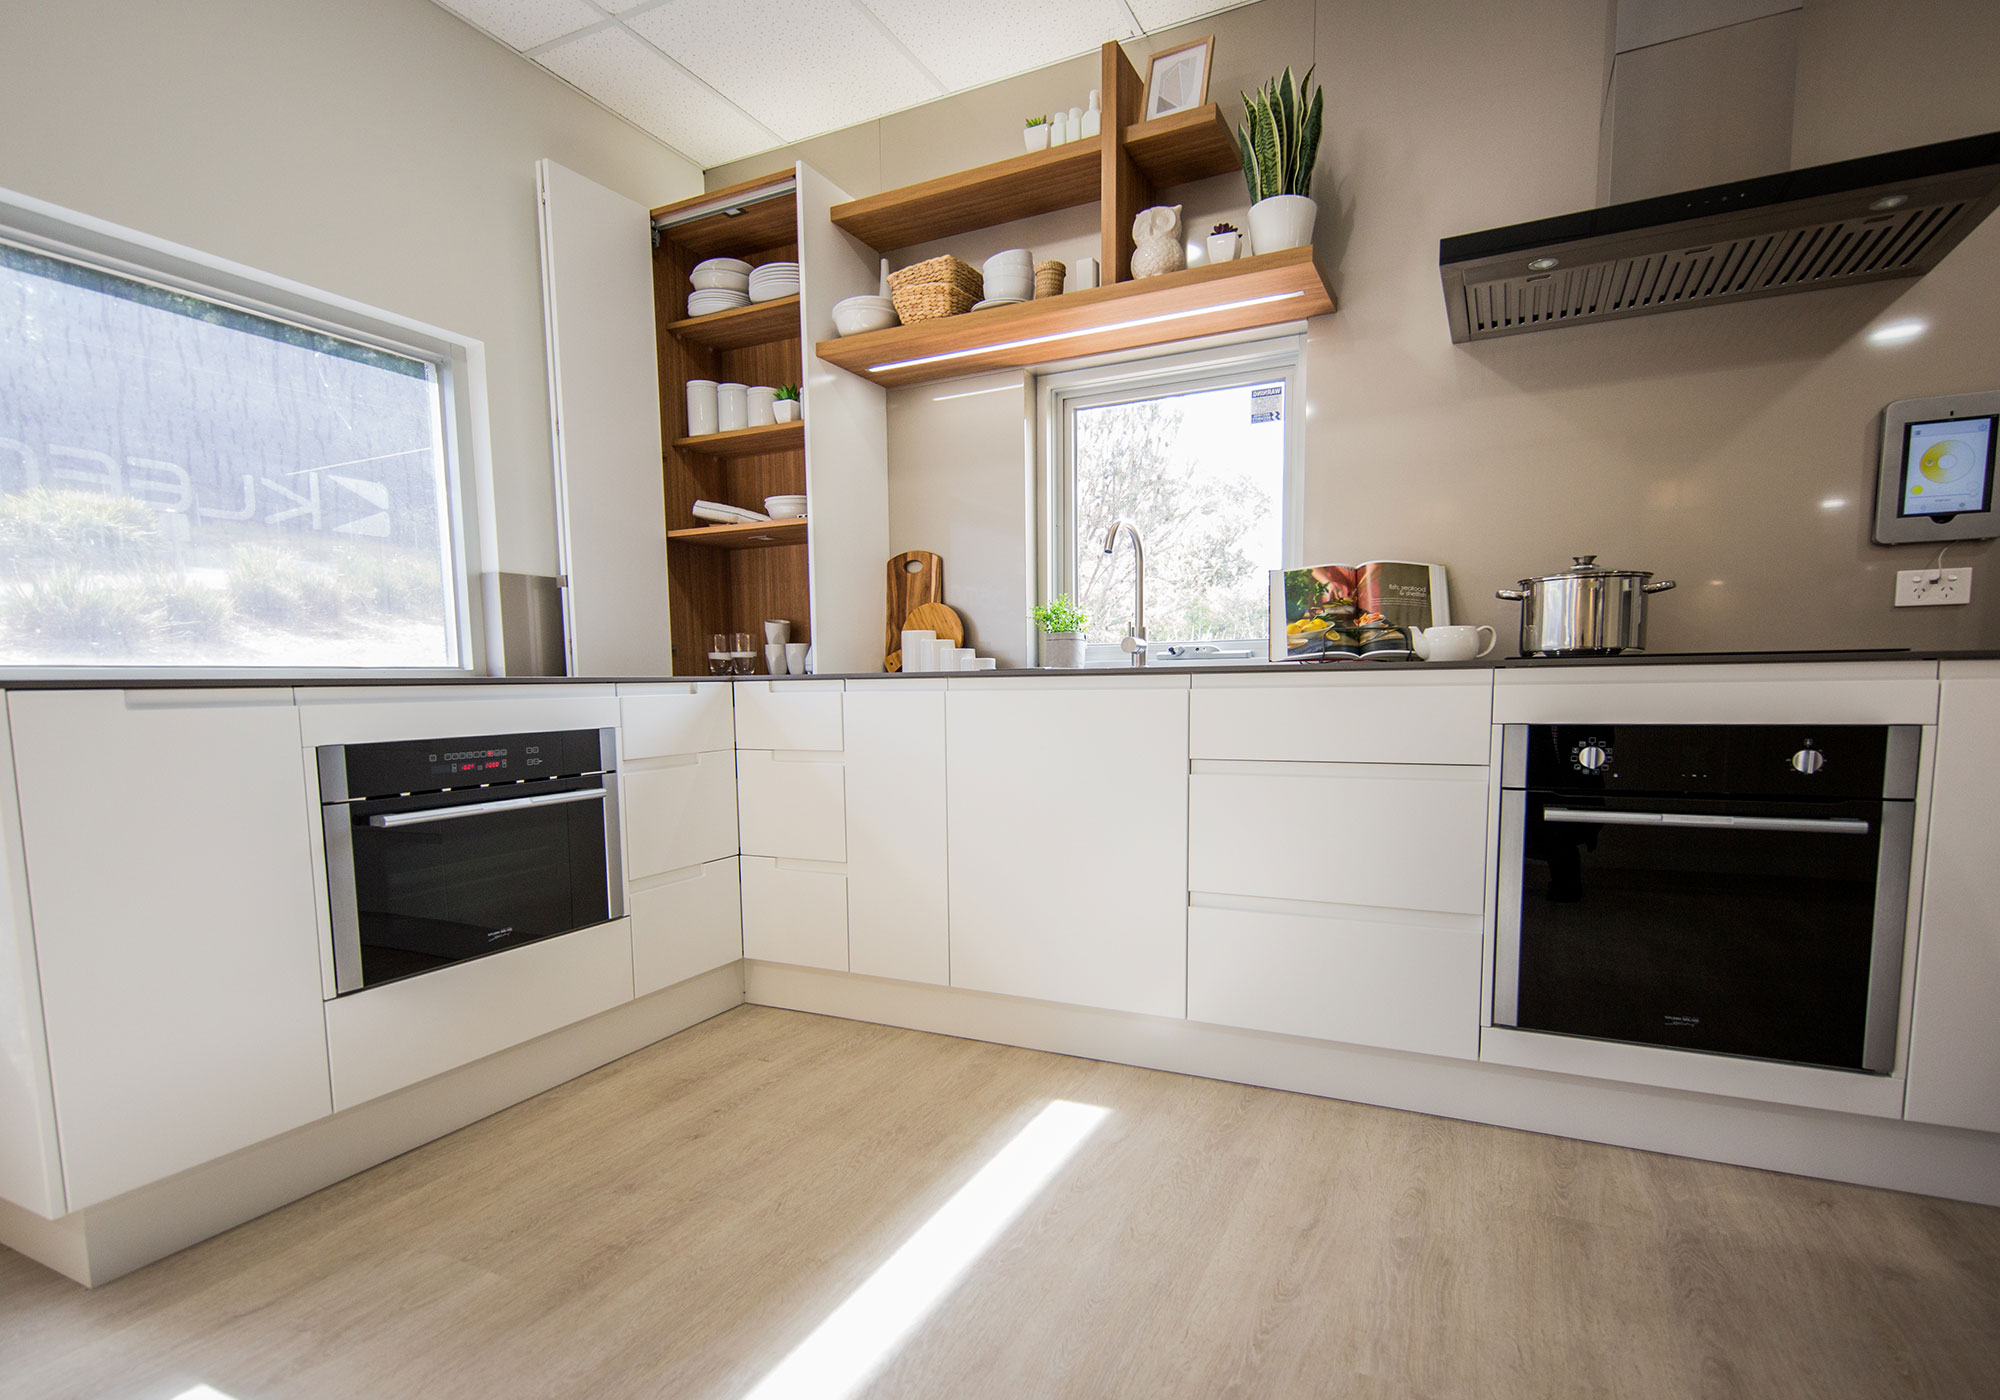 Options available from various kitchens and storage options on display to experience the quality of these new kitchens and cabinets for yourself